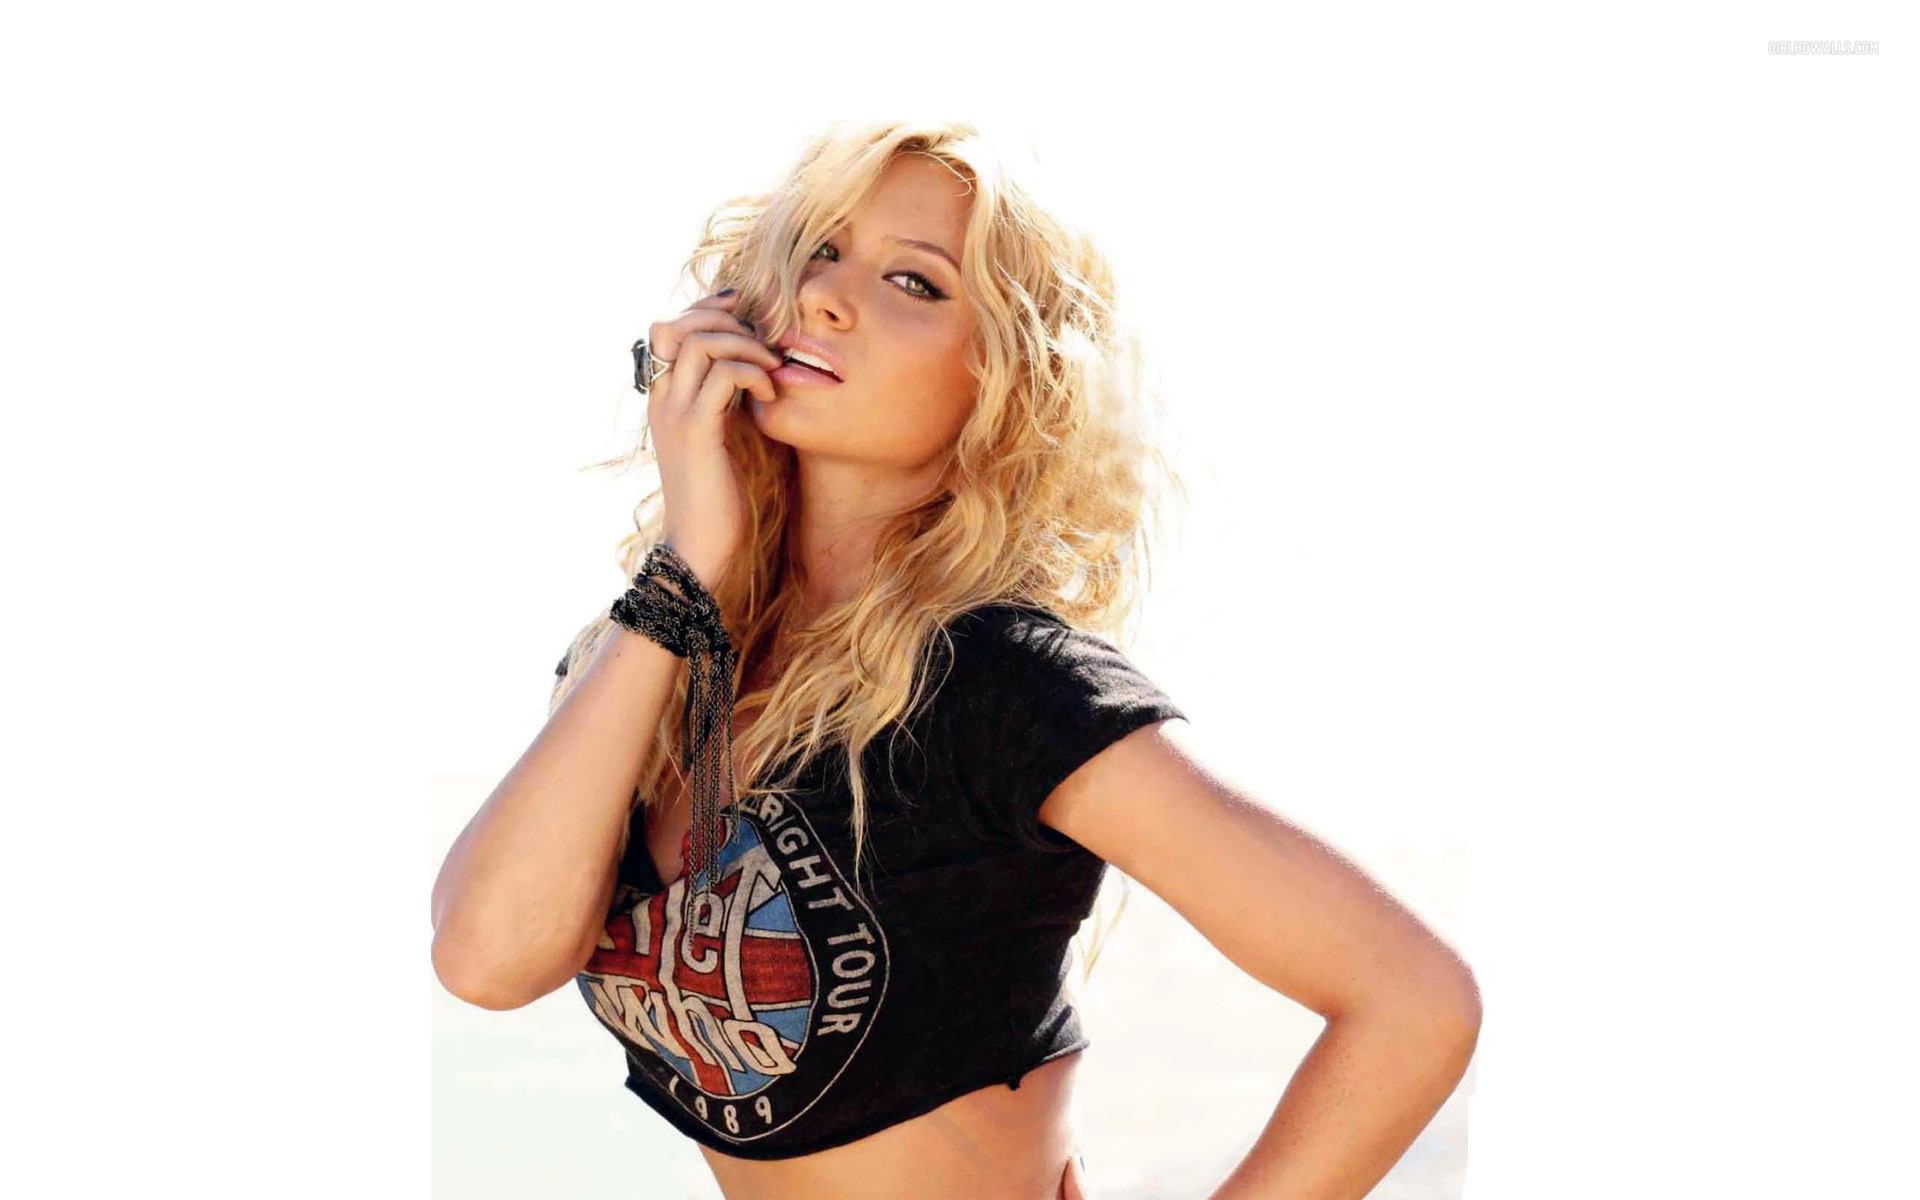 7 Aly Michalka Wallpapers | Aly Michalka Backgrounds